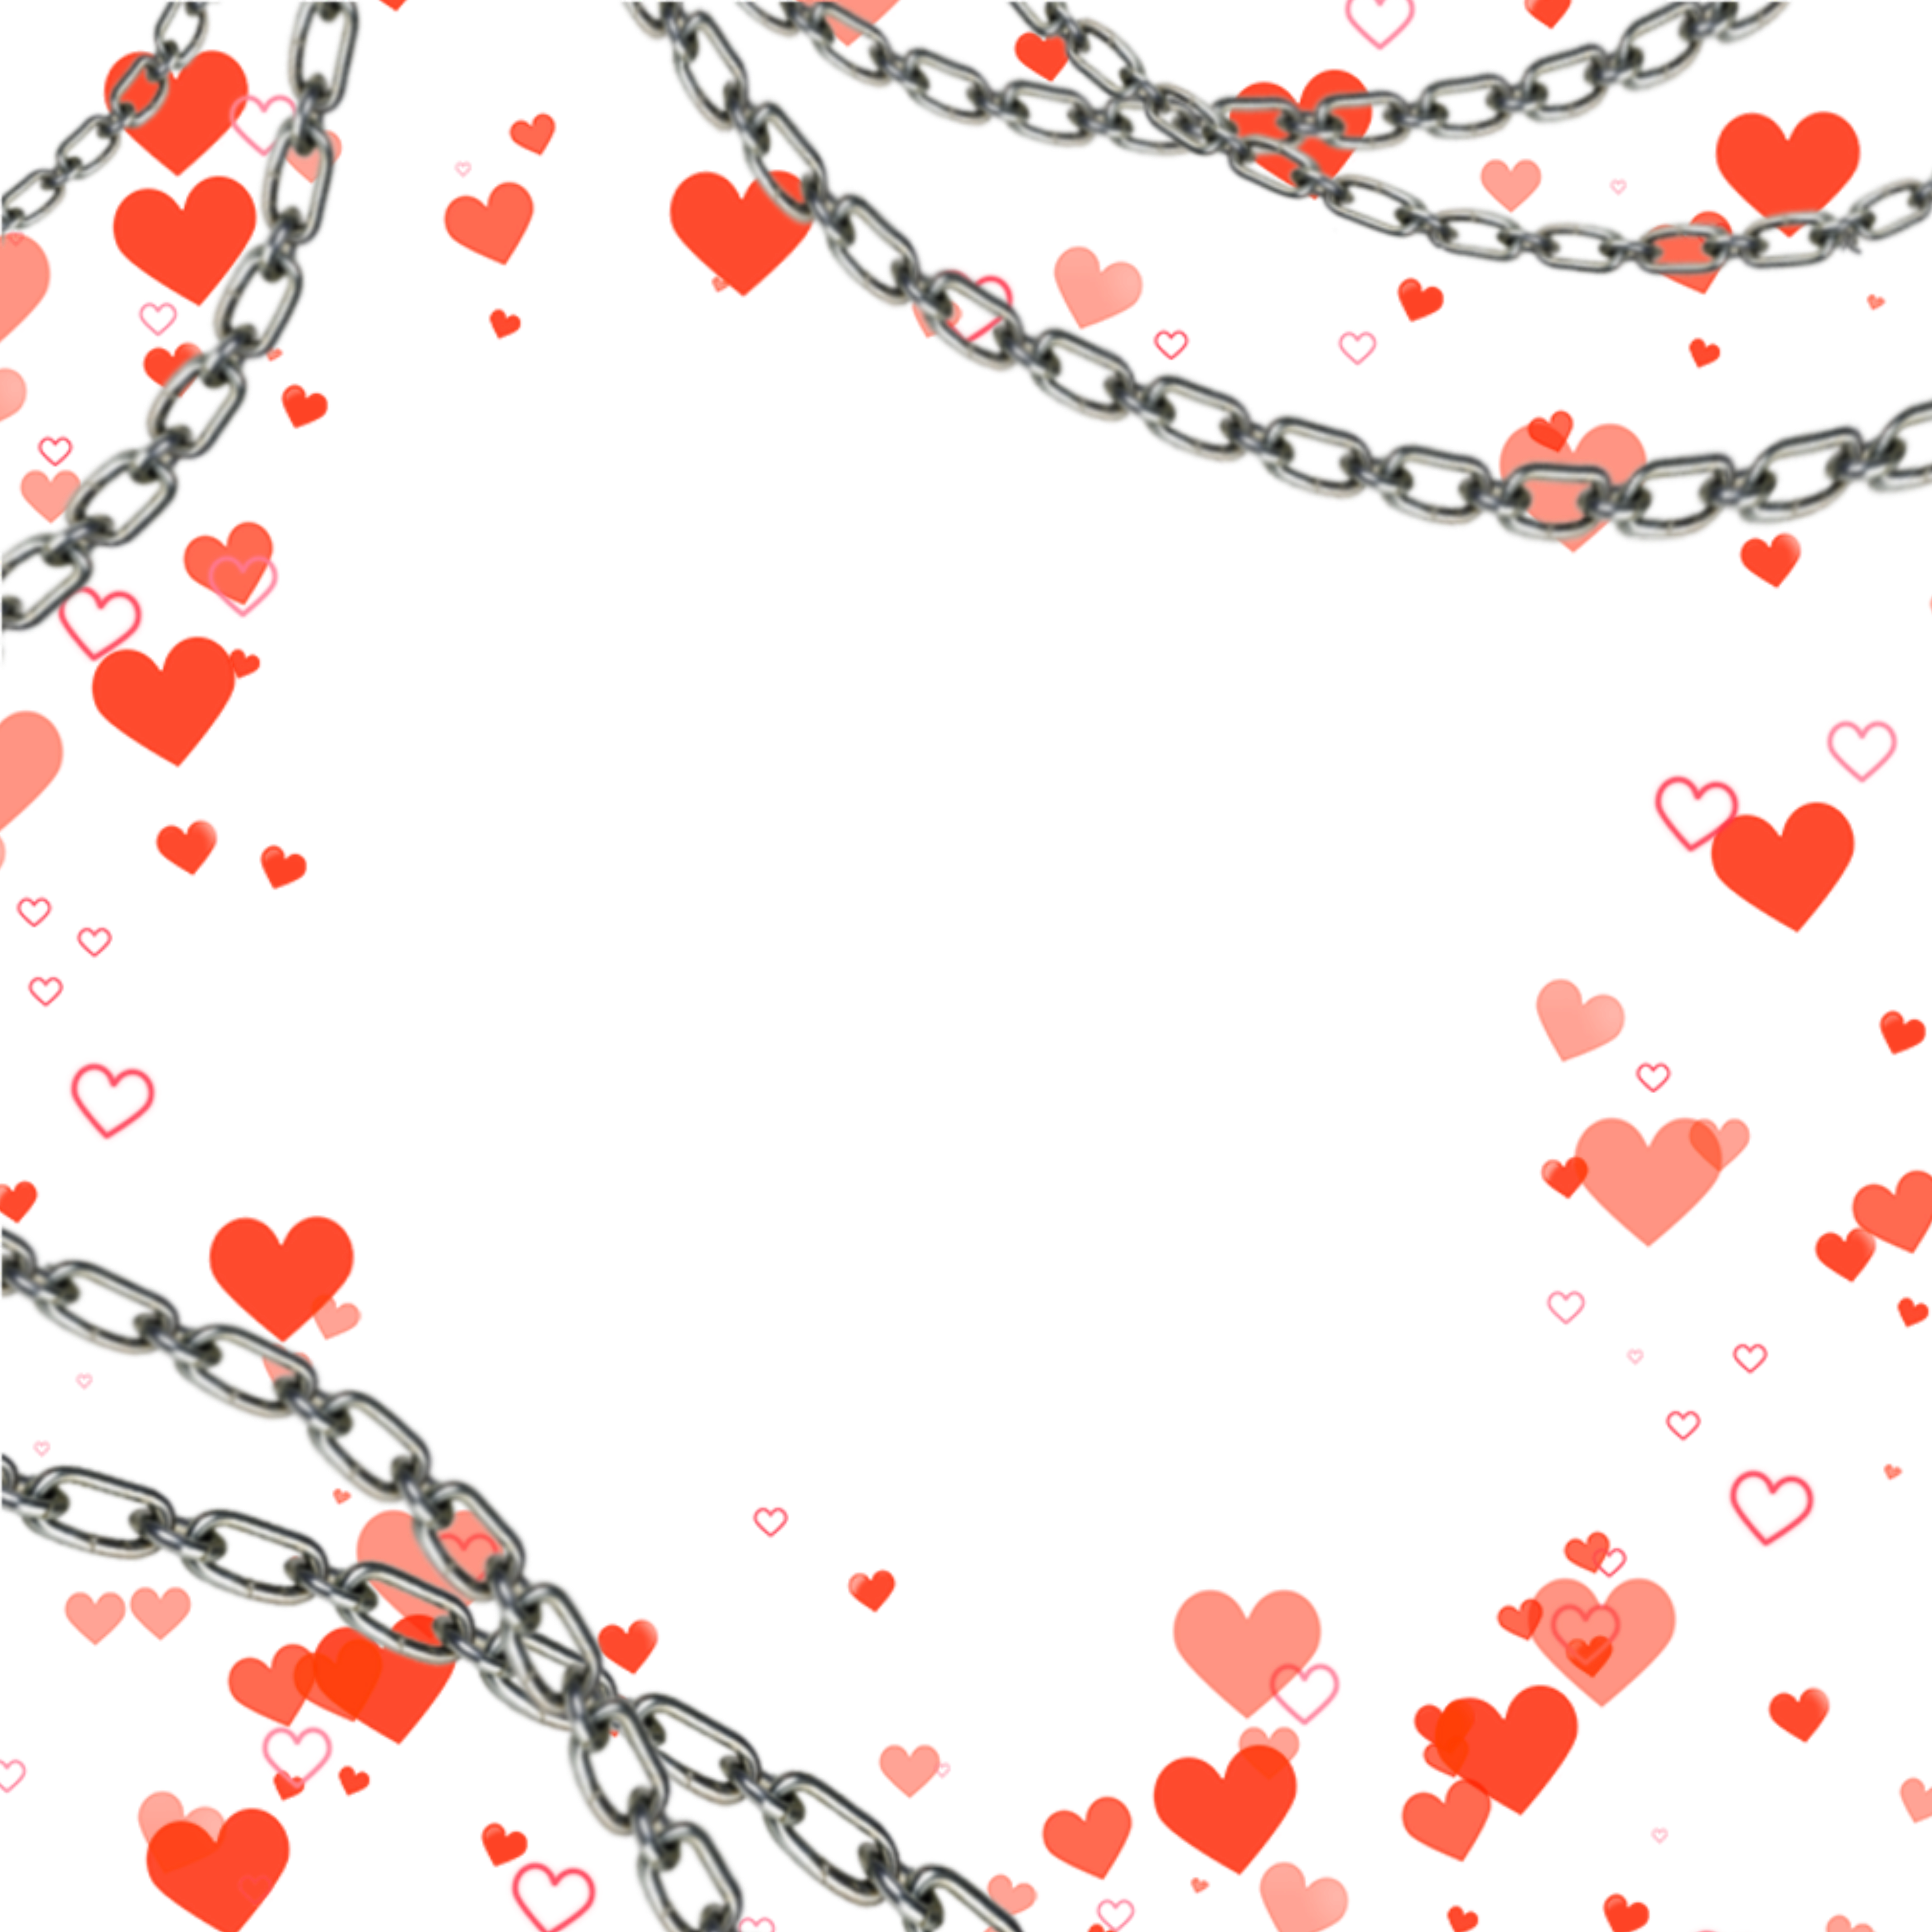 Heartframe Chains Chainframe Edgy Aesthetic Redheartframe Redhearts Border Freetoedit Overlays Picsart Heart Frame Goth Wallpaper